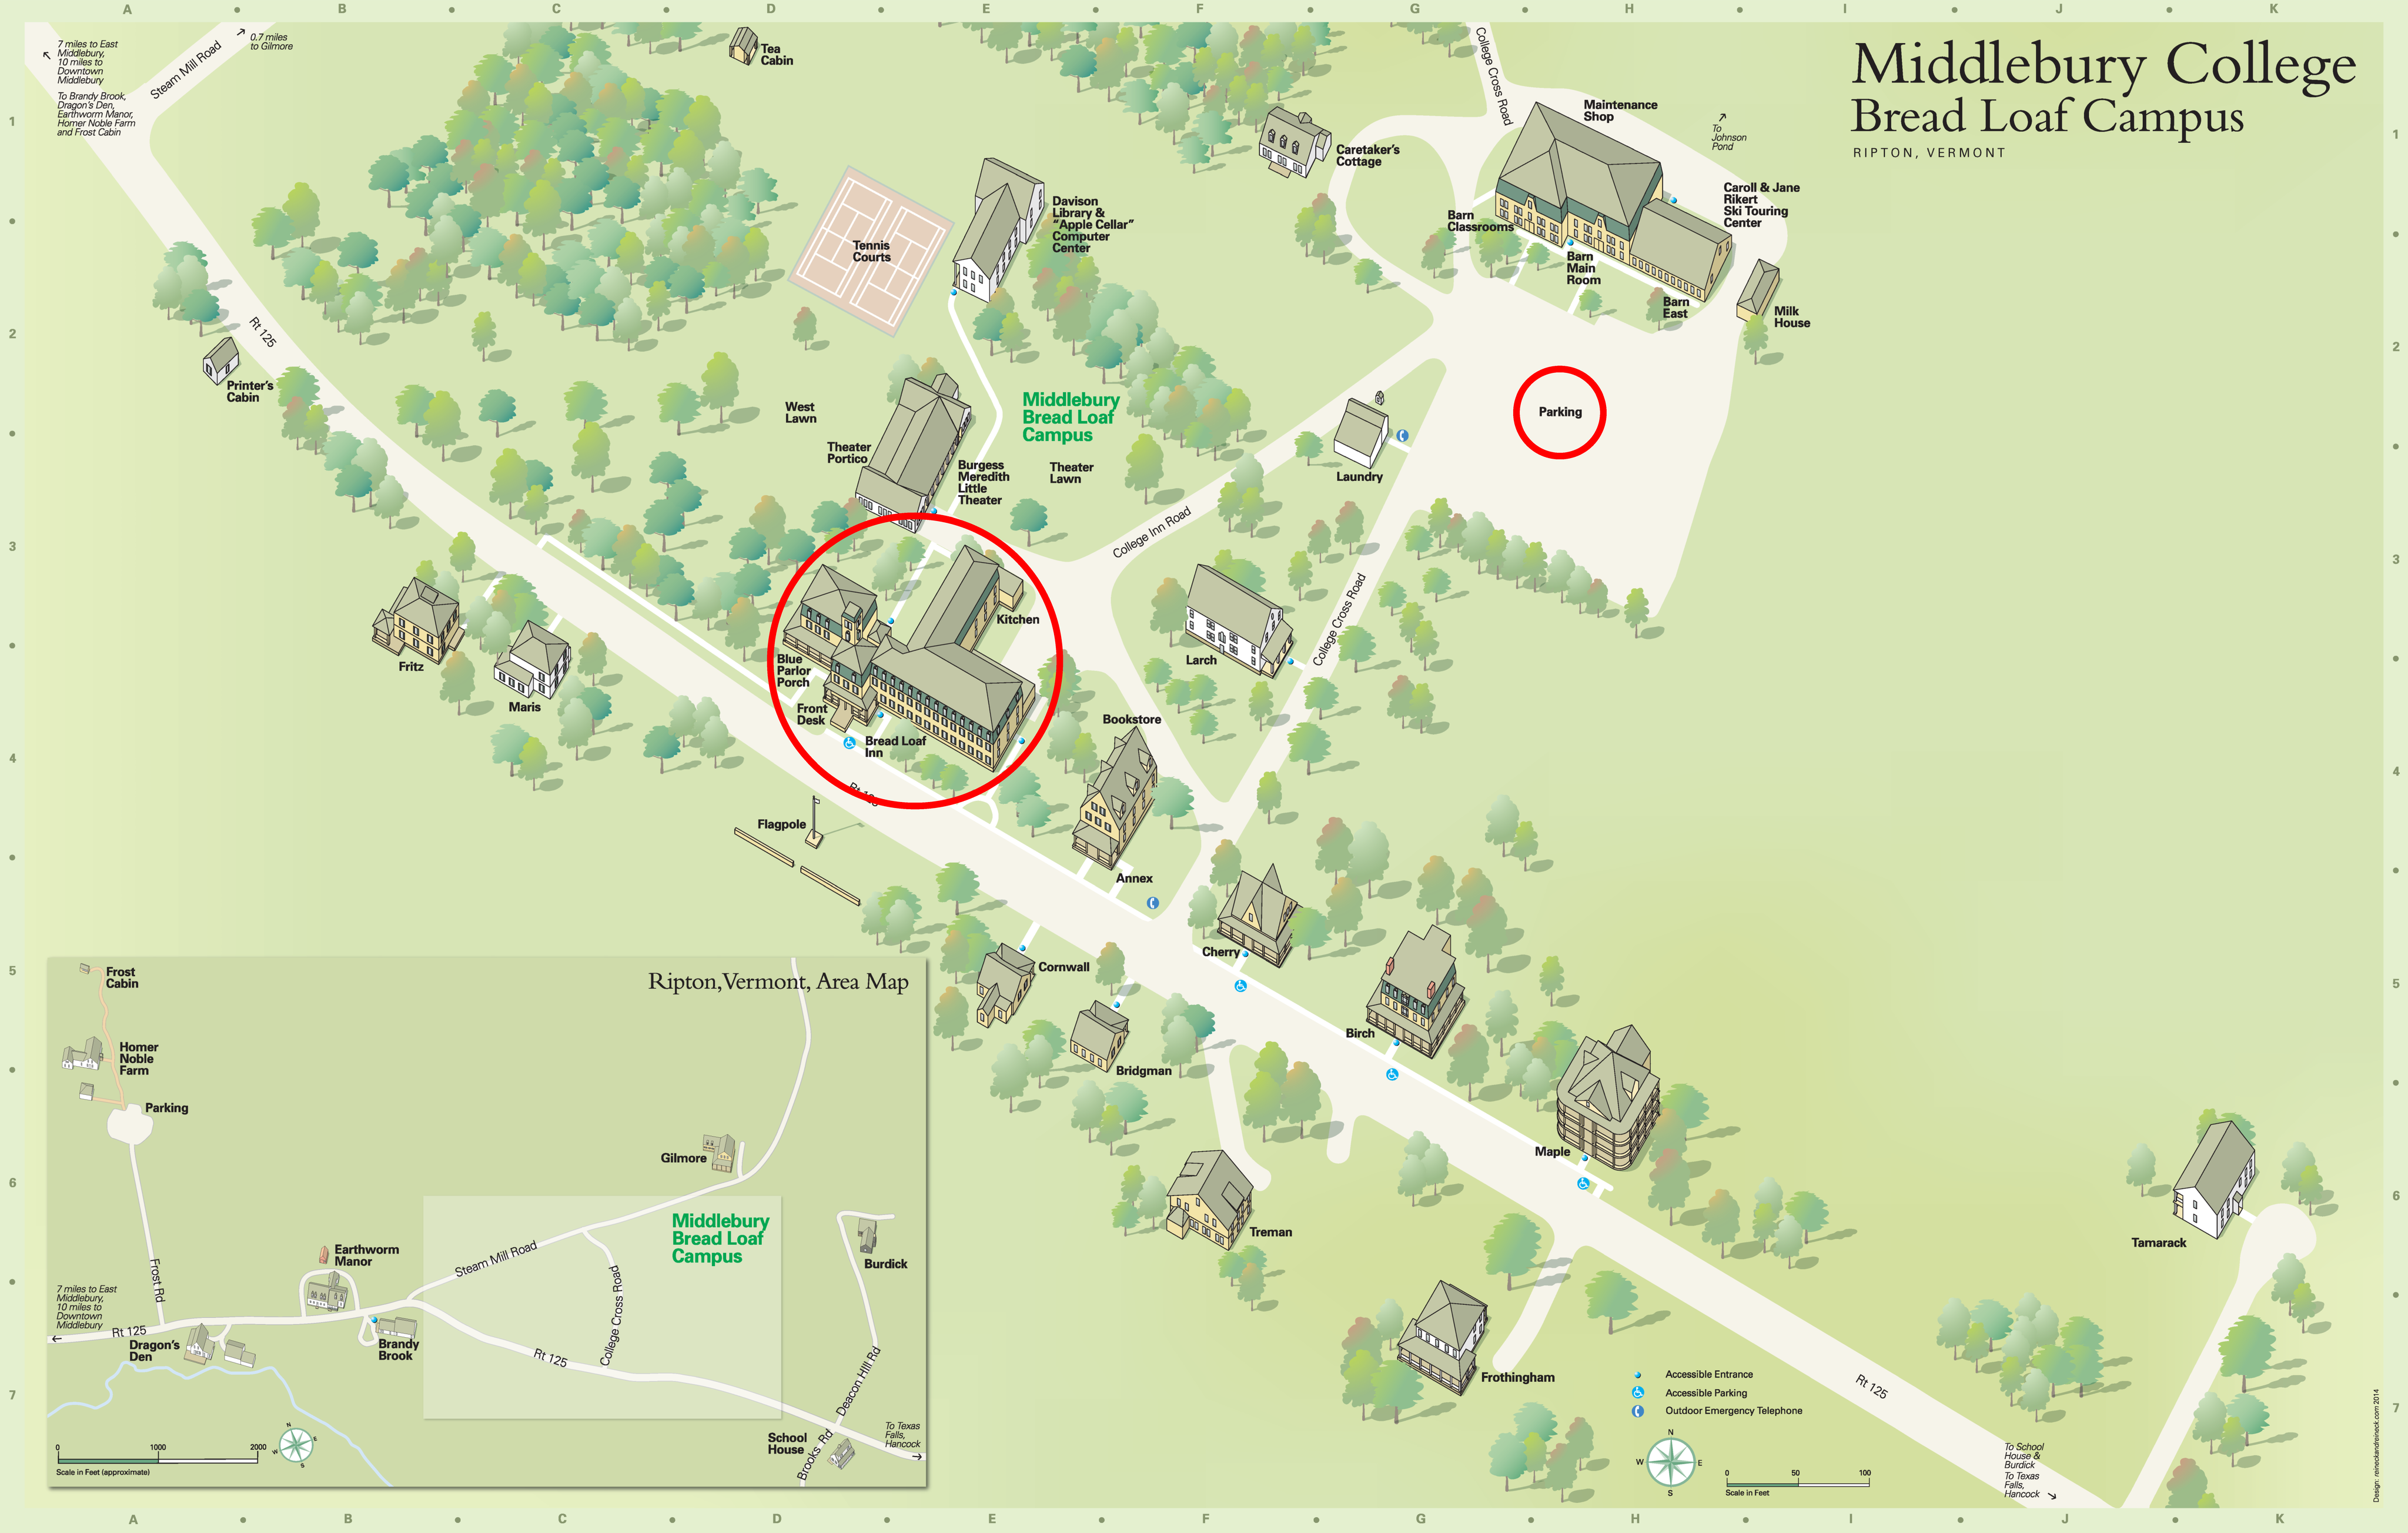 middlebury college campus map Locations Knac Student Research Symposium 2018 middlebury college campus map